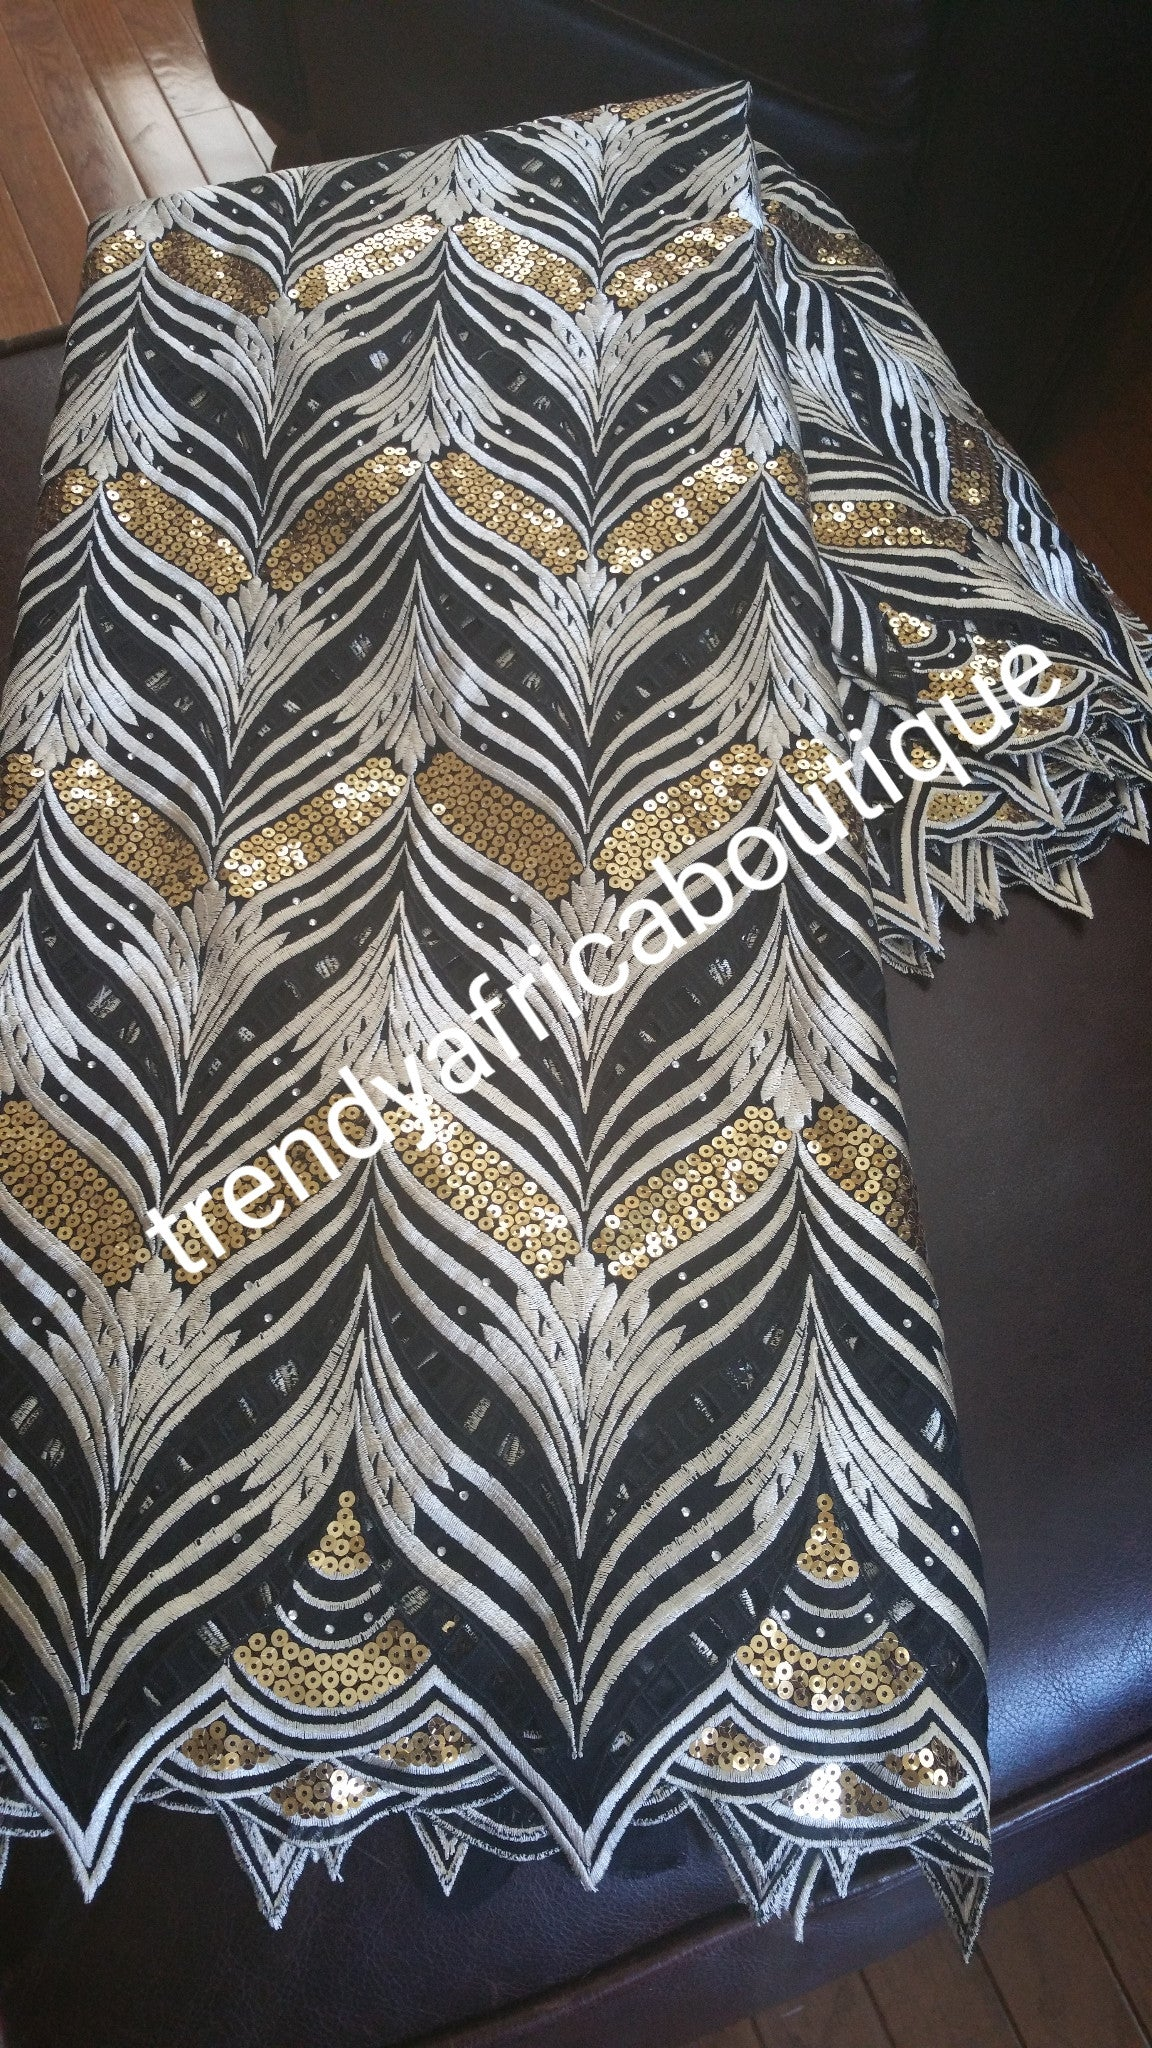 Special offer: Black/Gold/Beige Cotton Voile,  Swiss lace fabric embellished with Gold Sequence. Sole per 5 yards